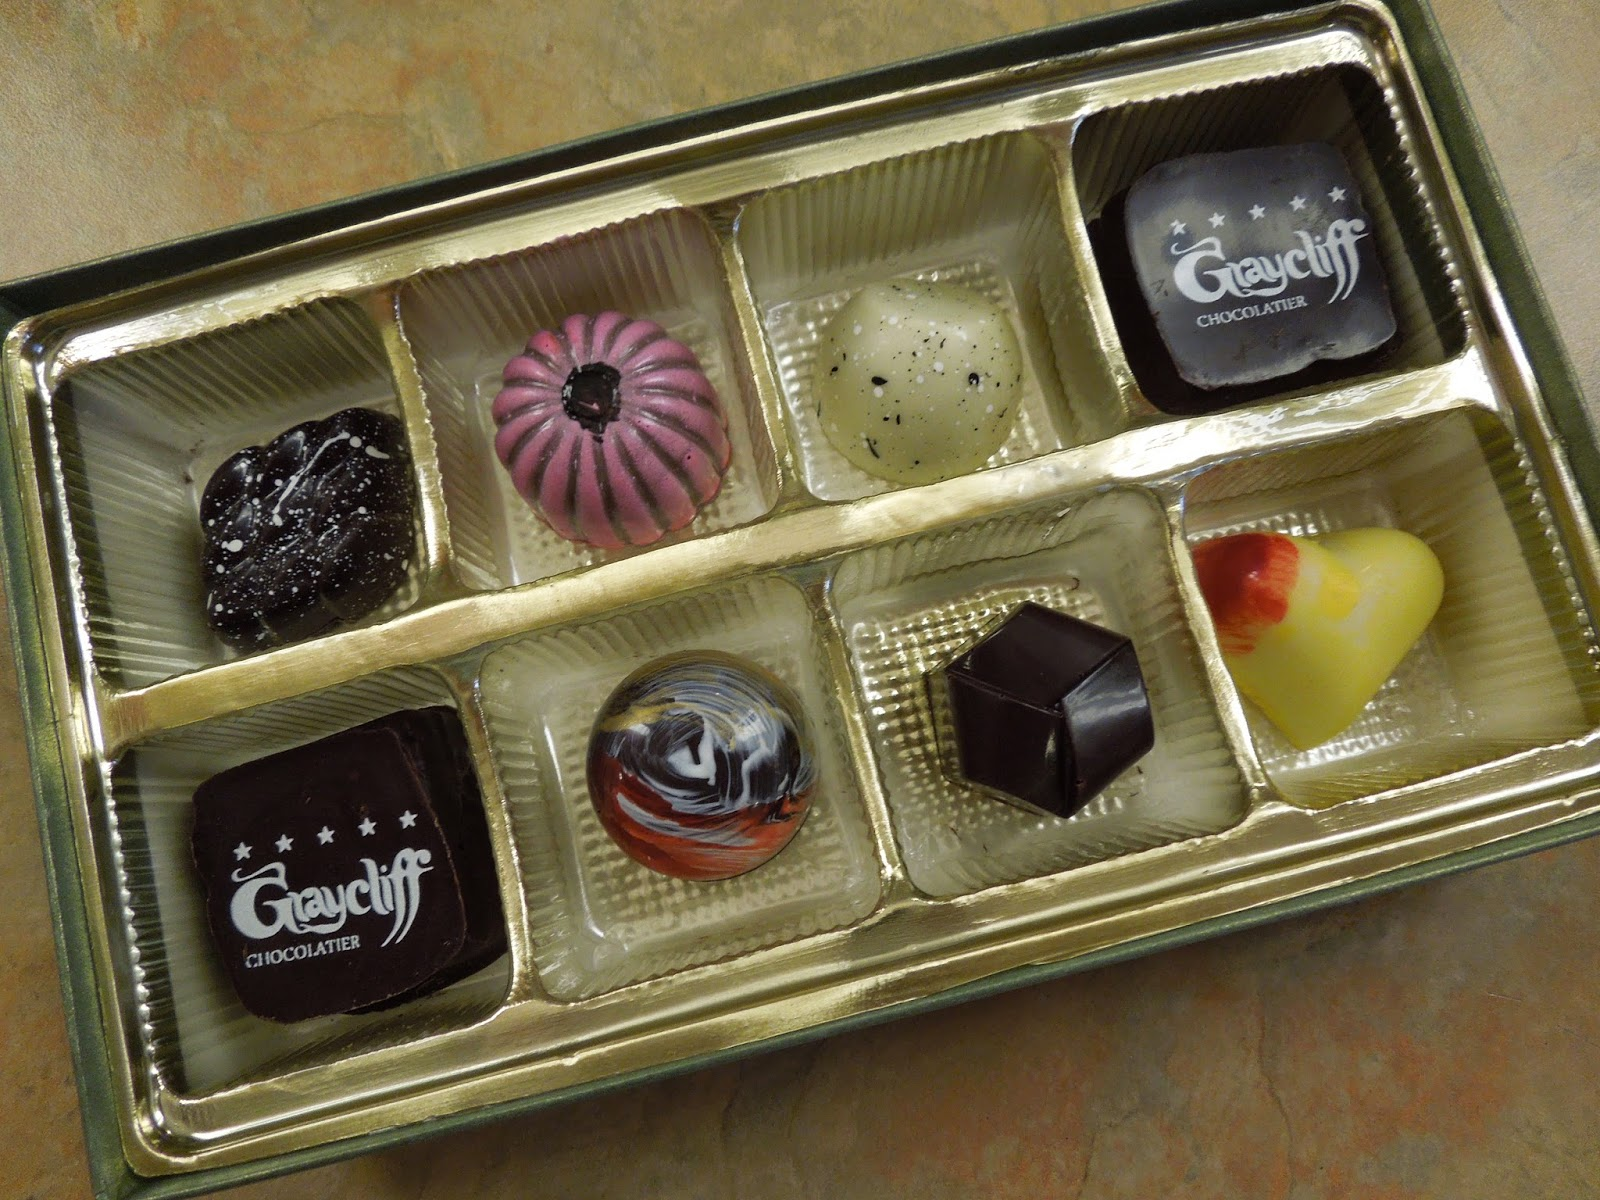 Graycliff chocolates